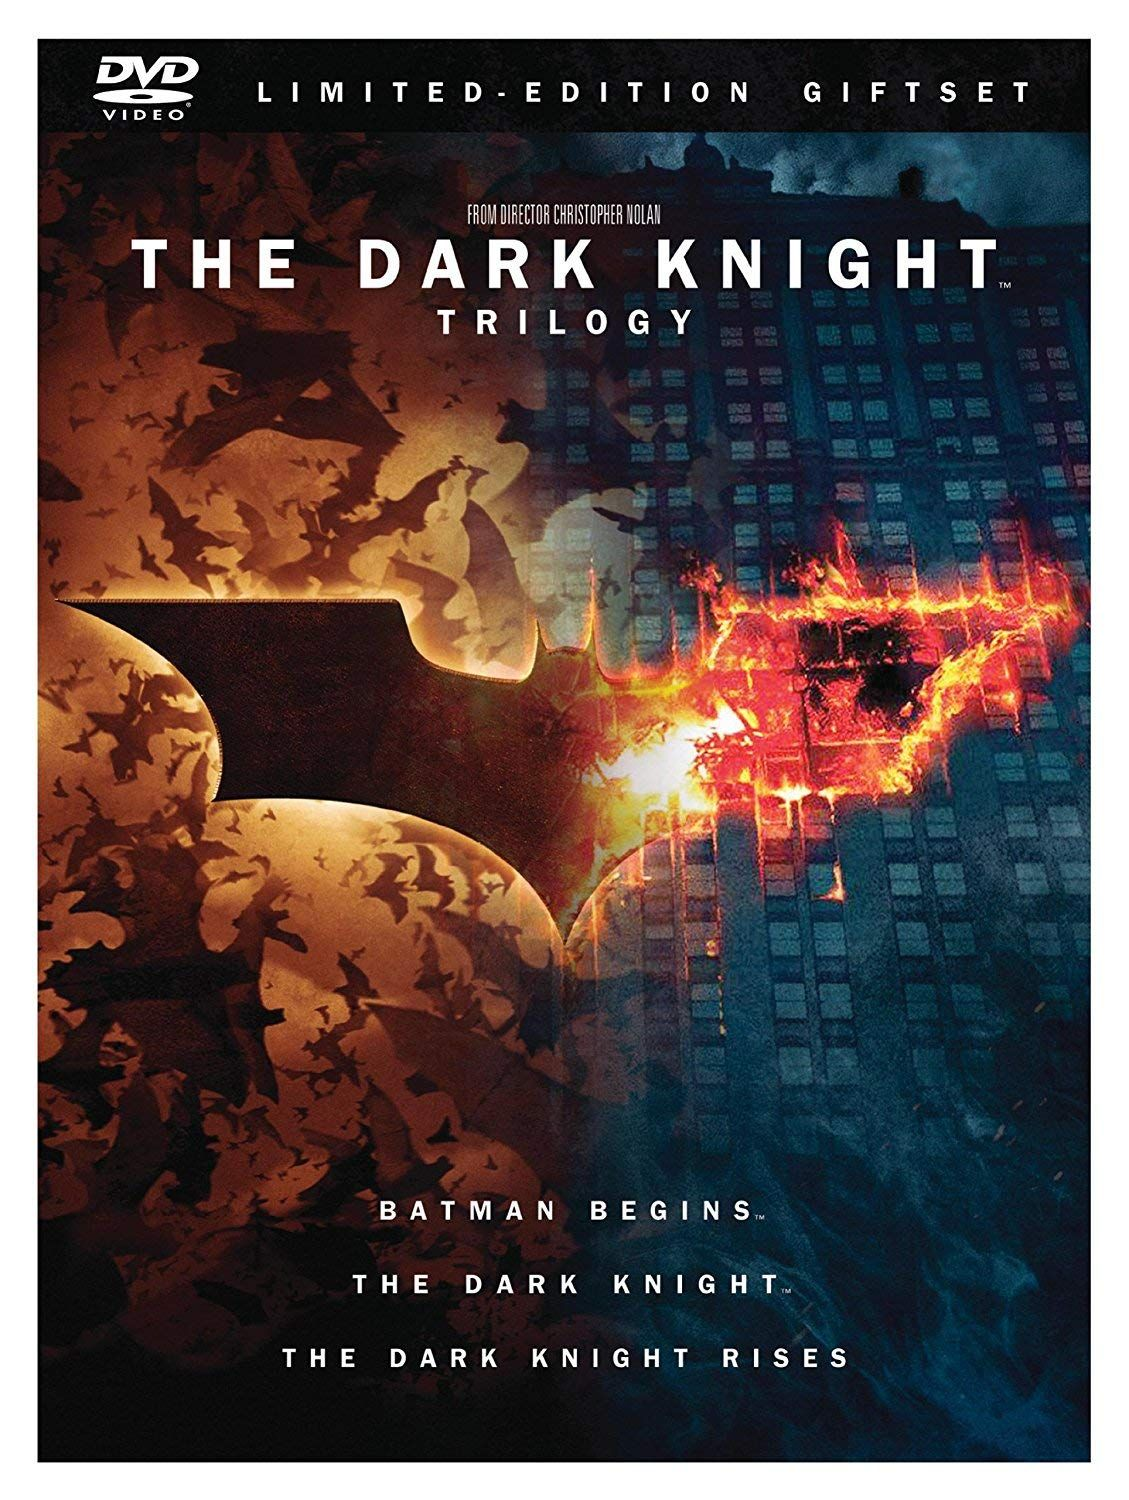 The Dark Knight Trilogy Truefrench 1080p BluRay HDLight DTS H264-Xantar (Trilogie Le Chevalier Noir) (2005-2012)